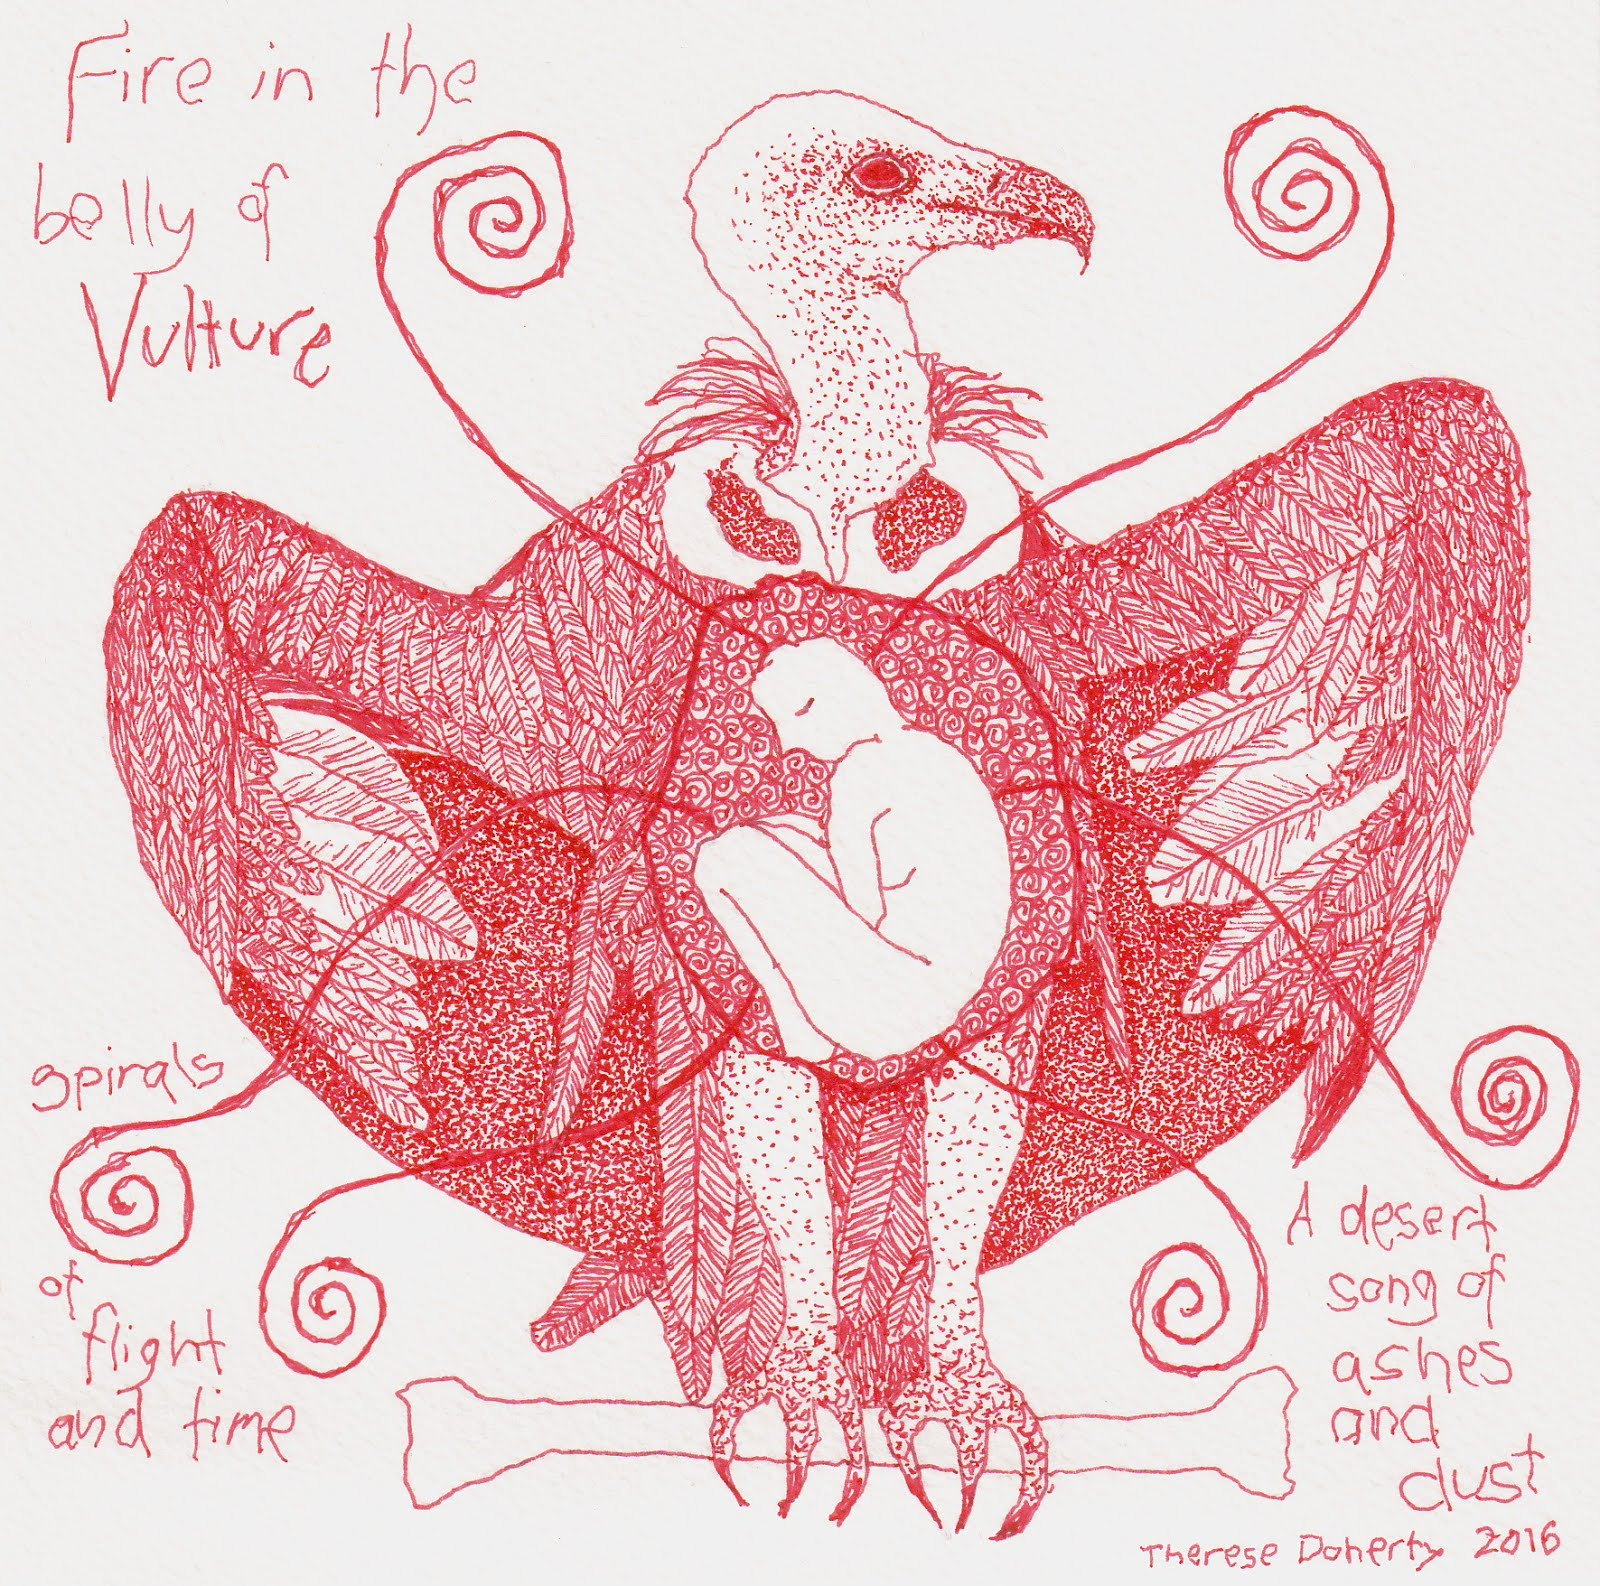 Fire in the Belly of Vulture